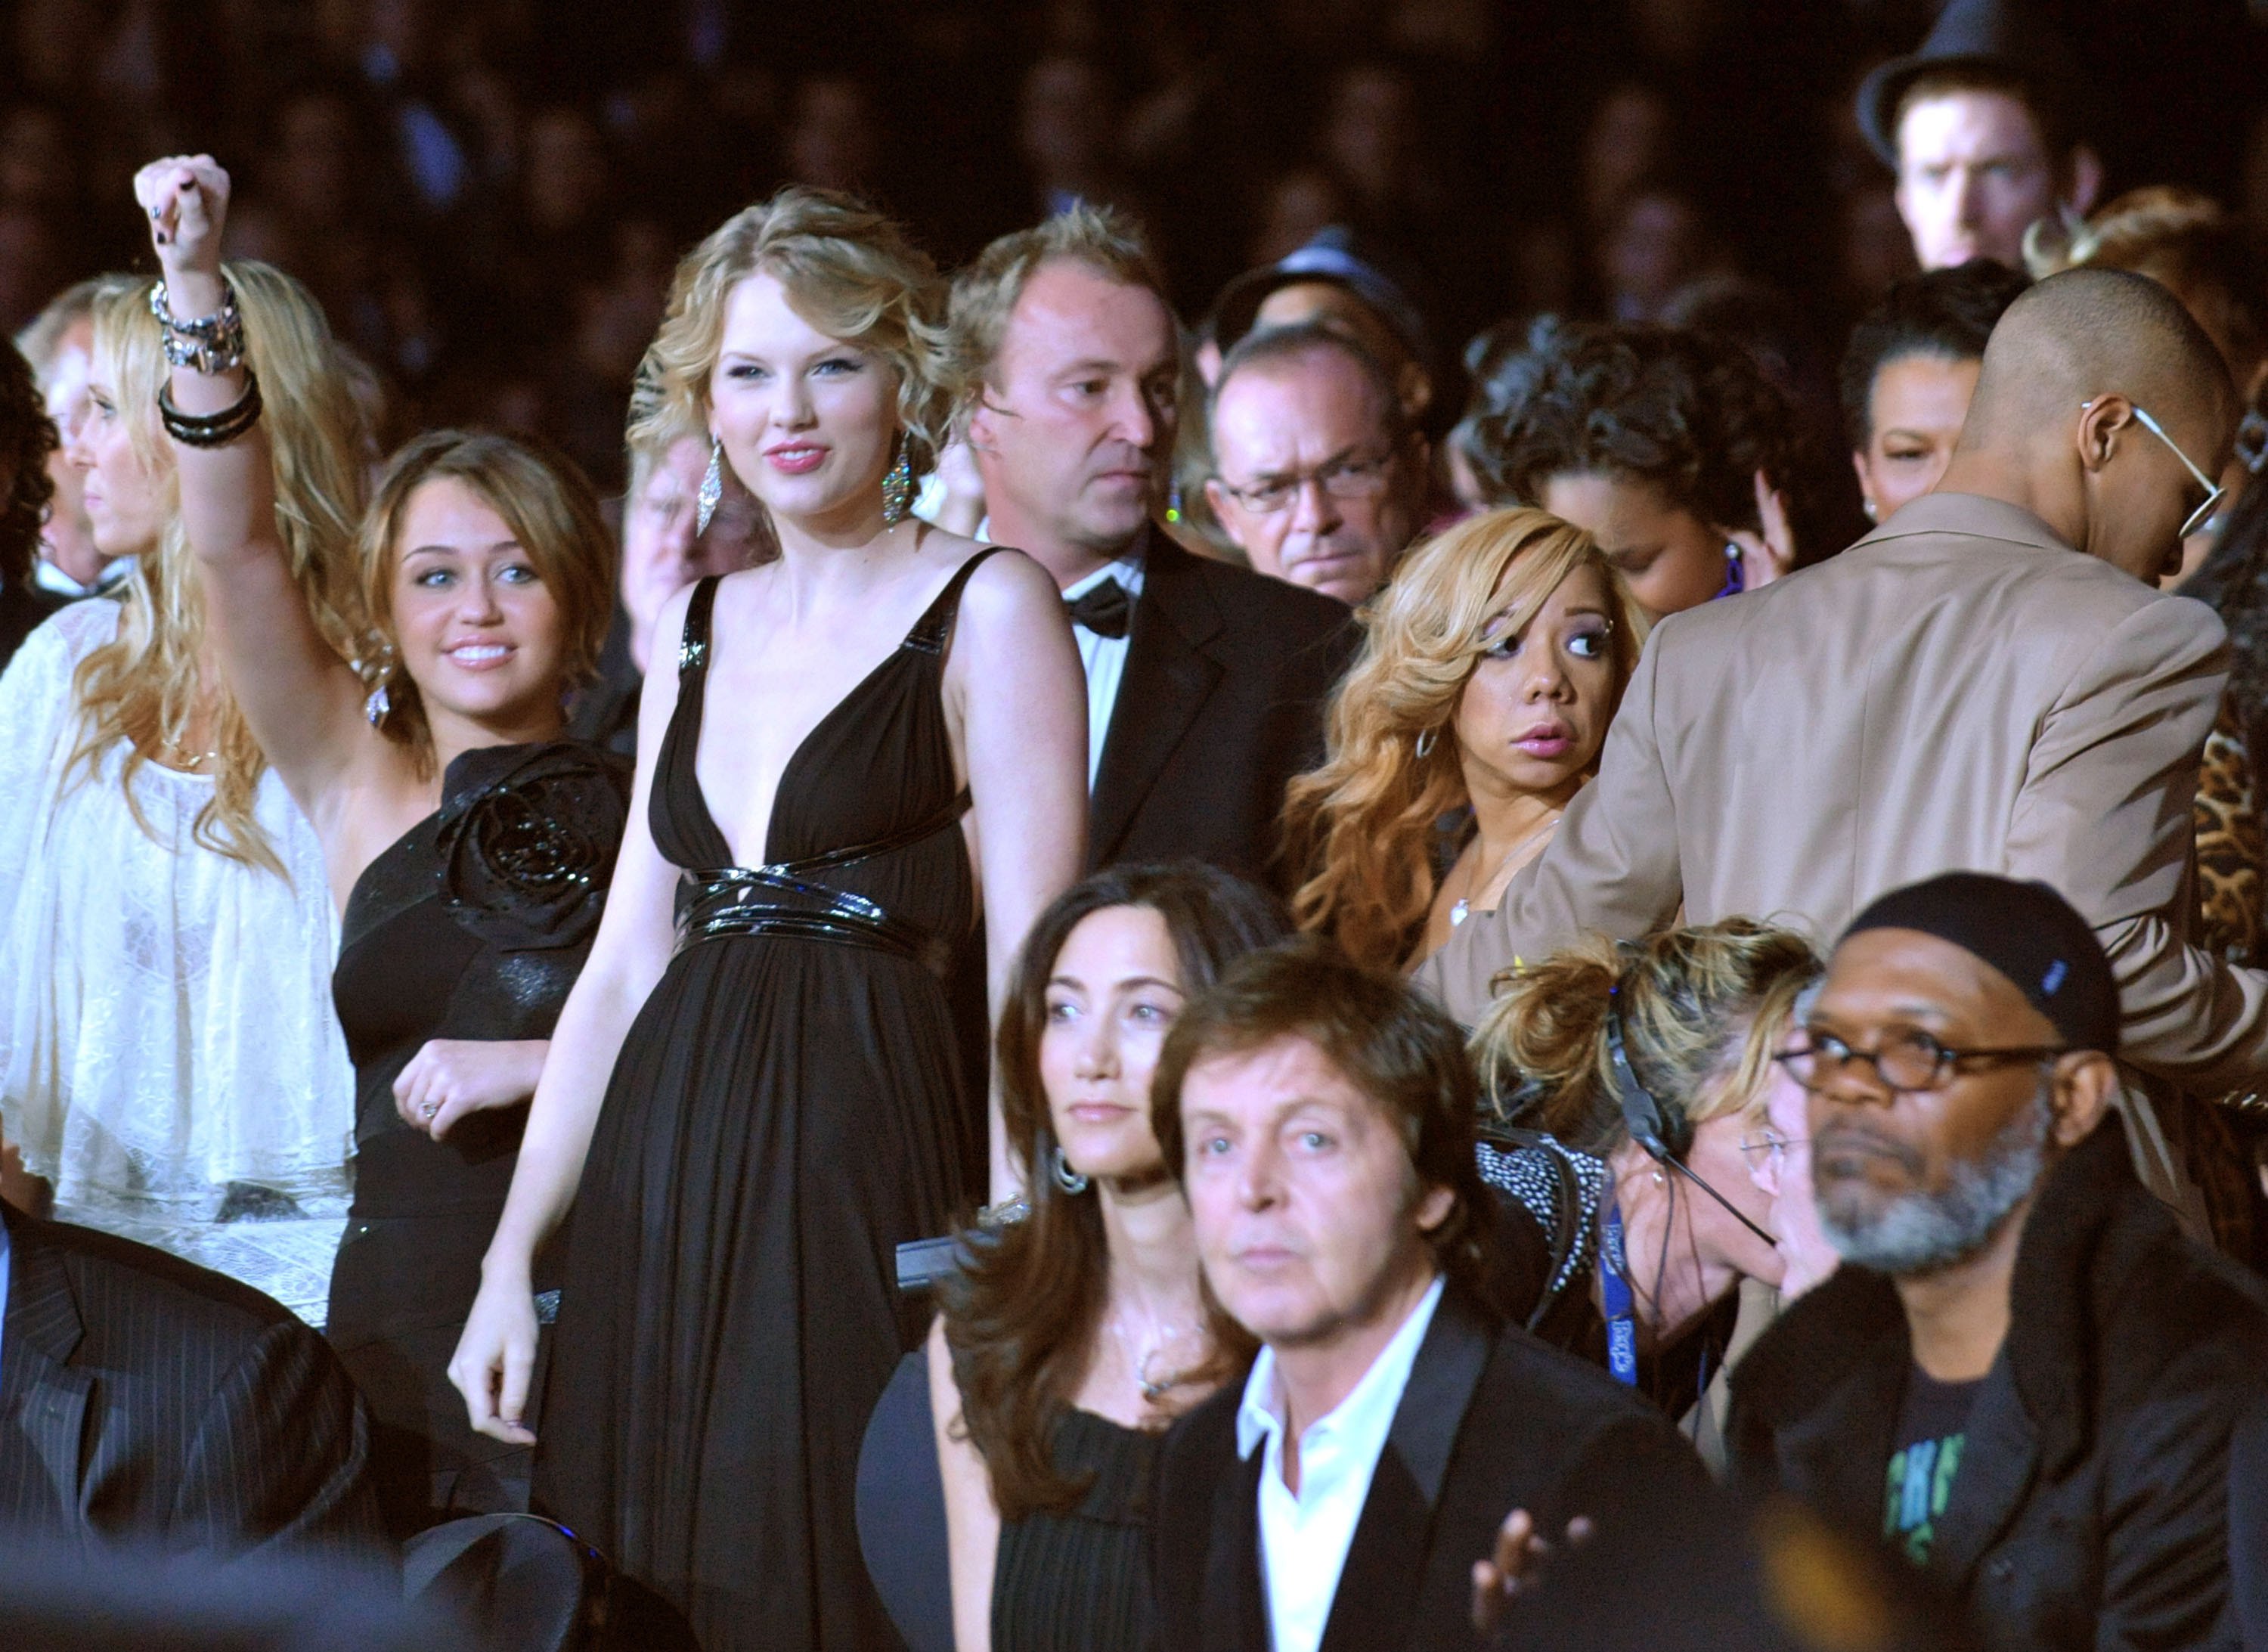 Miley Cyrus with a smile and her arm raised as she stands near Taylor Swift, Tiny, T.I., Paul McCartney, and Samuel L Jackson at an event